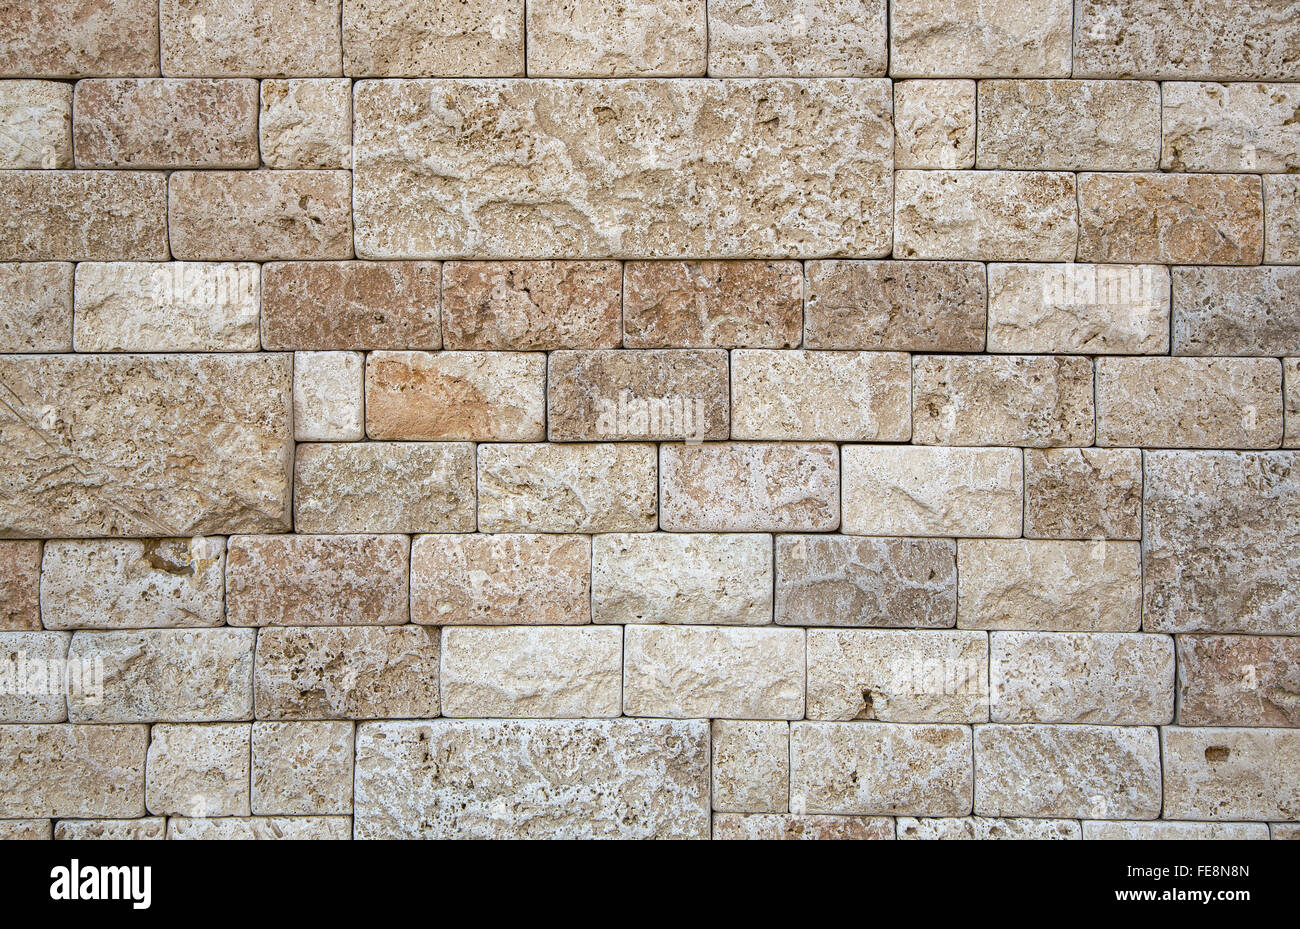 stone natural beige wall structure porous finishing alamy